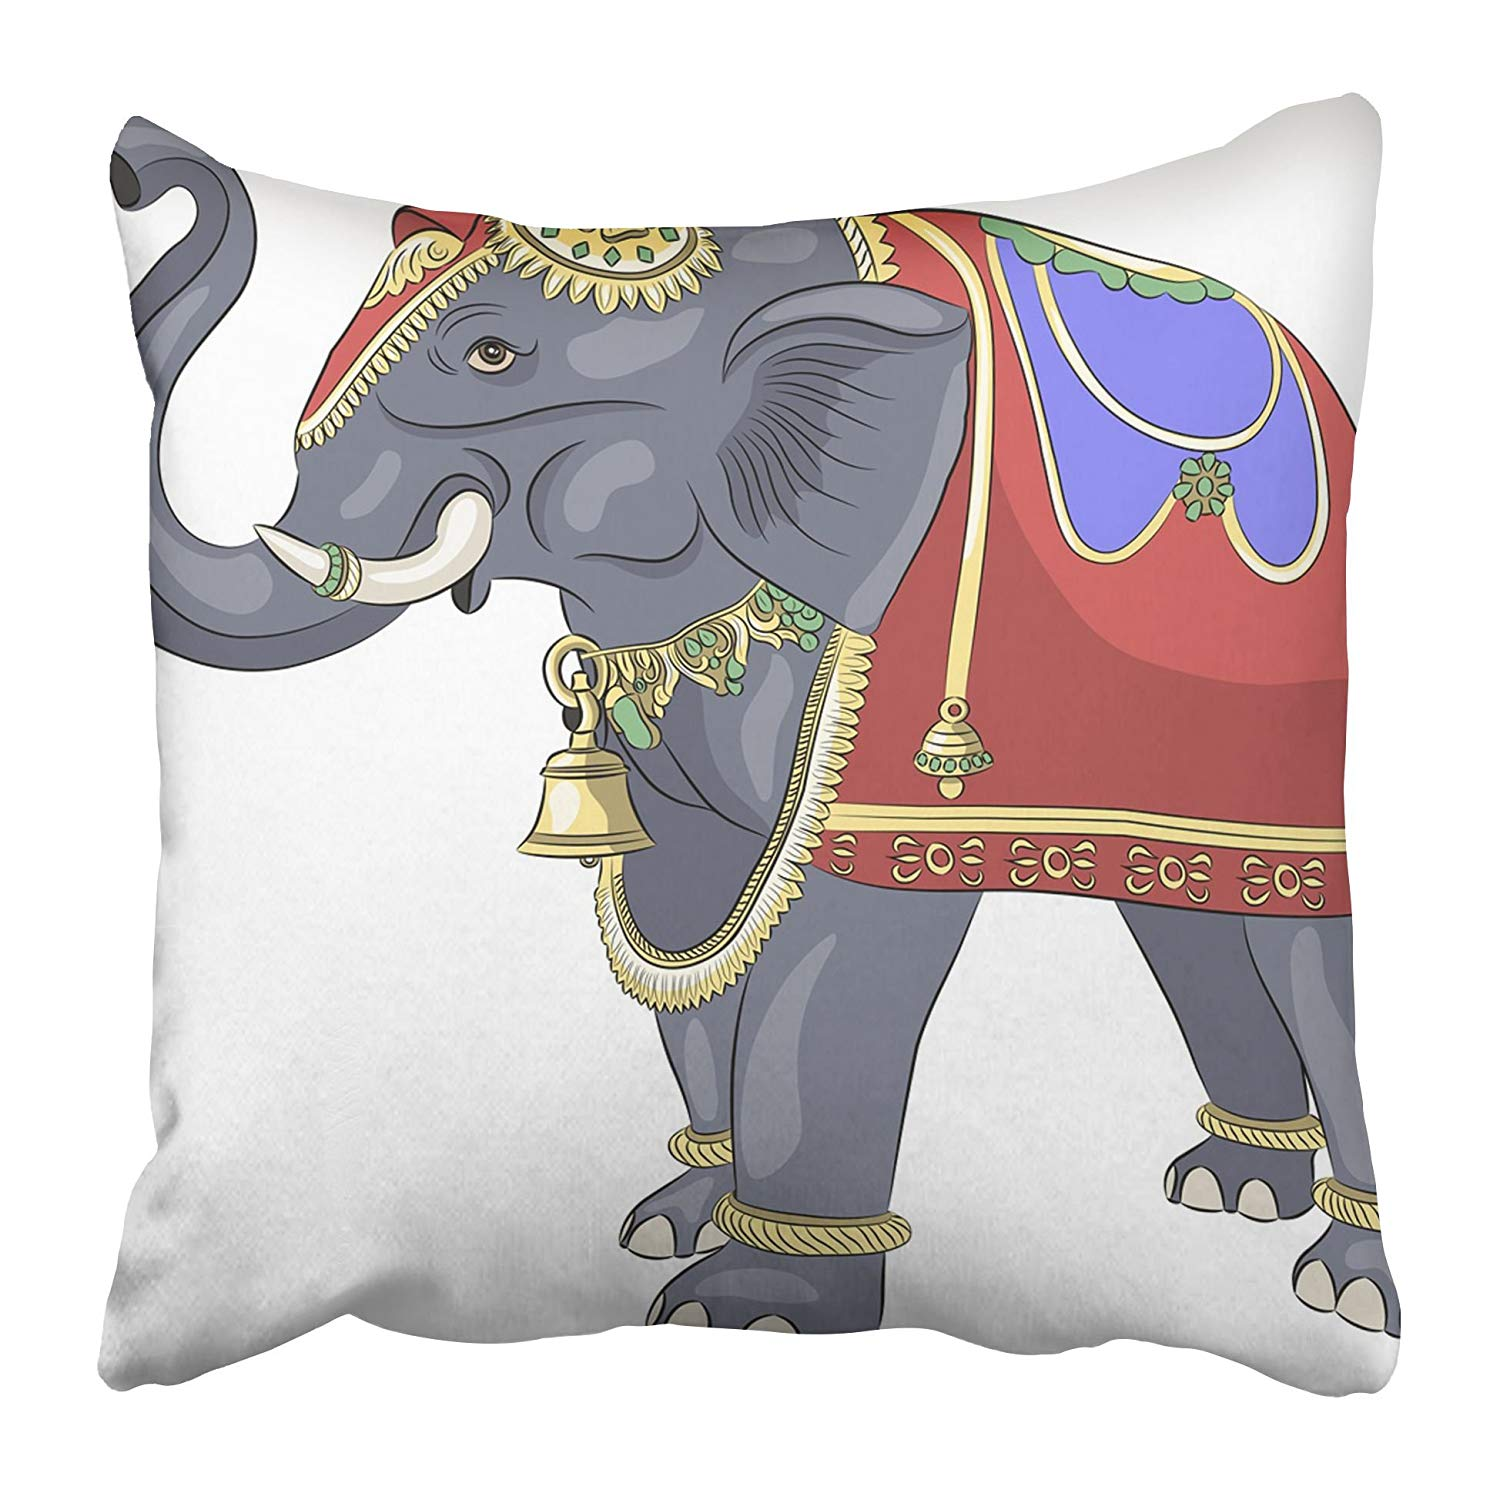 USART Gray Animals Decorated Bridal Elephant Asian Color Culture Gold Heavy Holy Pillow Case Cushion Cover 18x18 inch